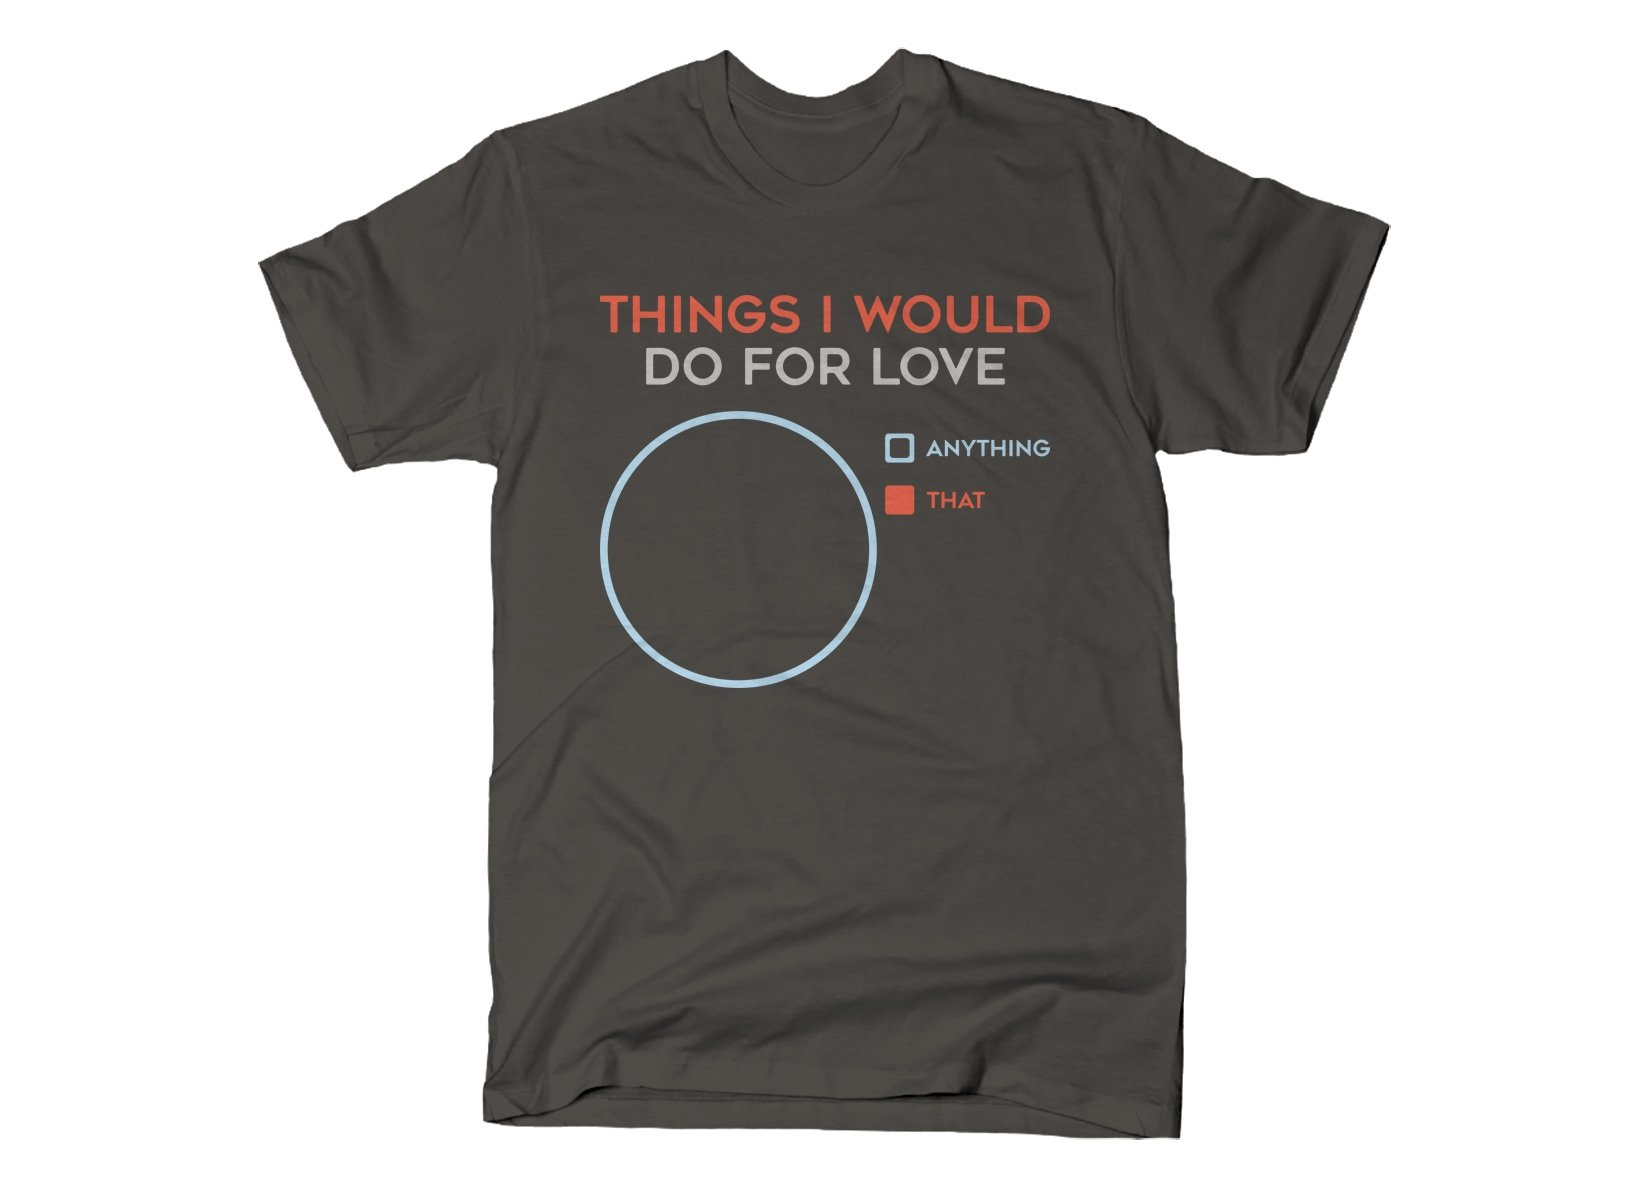 Things I Would Do For Love on Mens T-Shirt